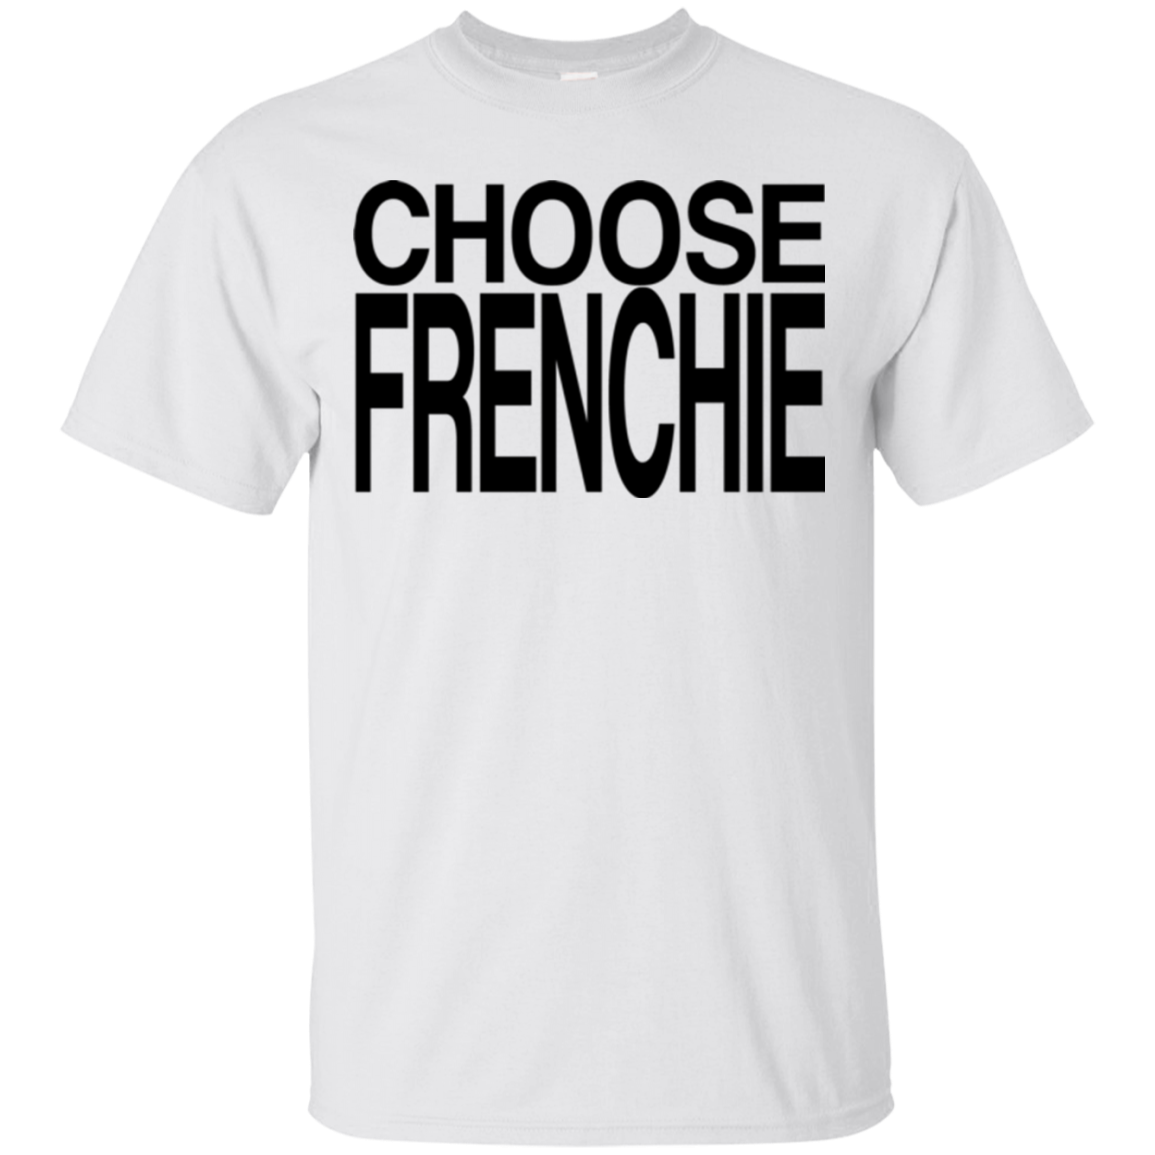 Choose Frenchie T-Shirt - Men's T-Shirts I Love Frenchie Bulldogs